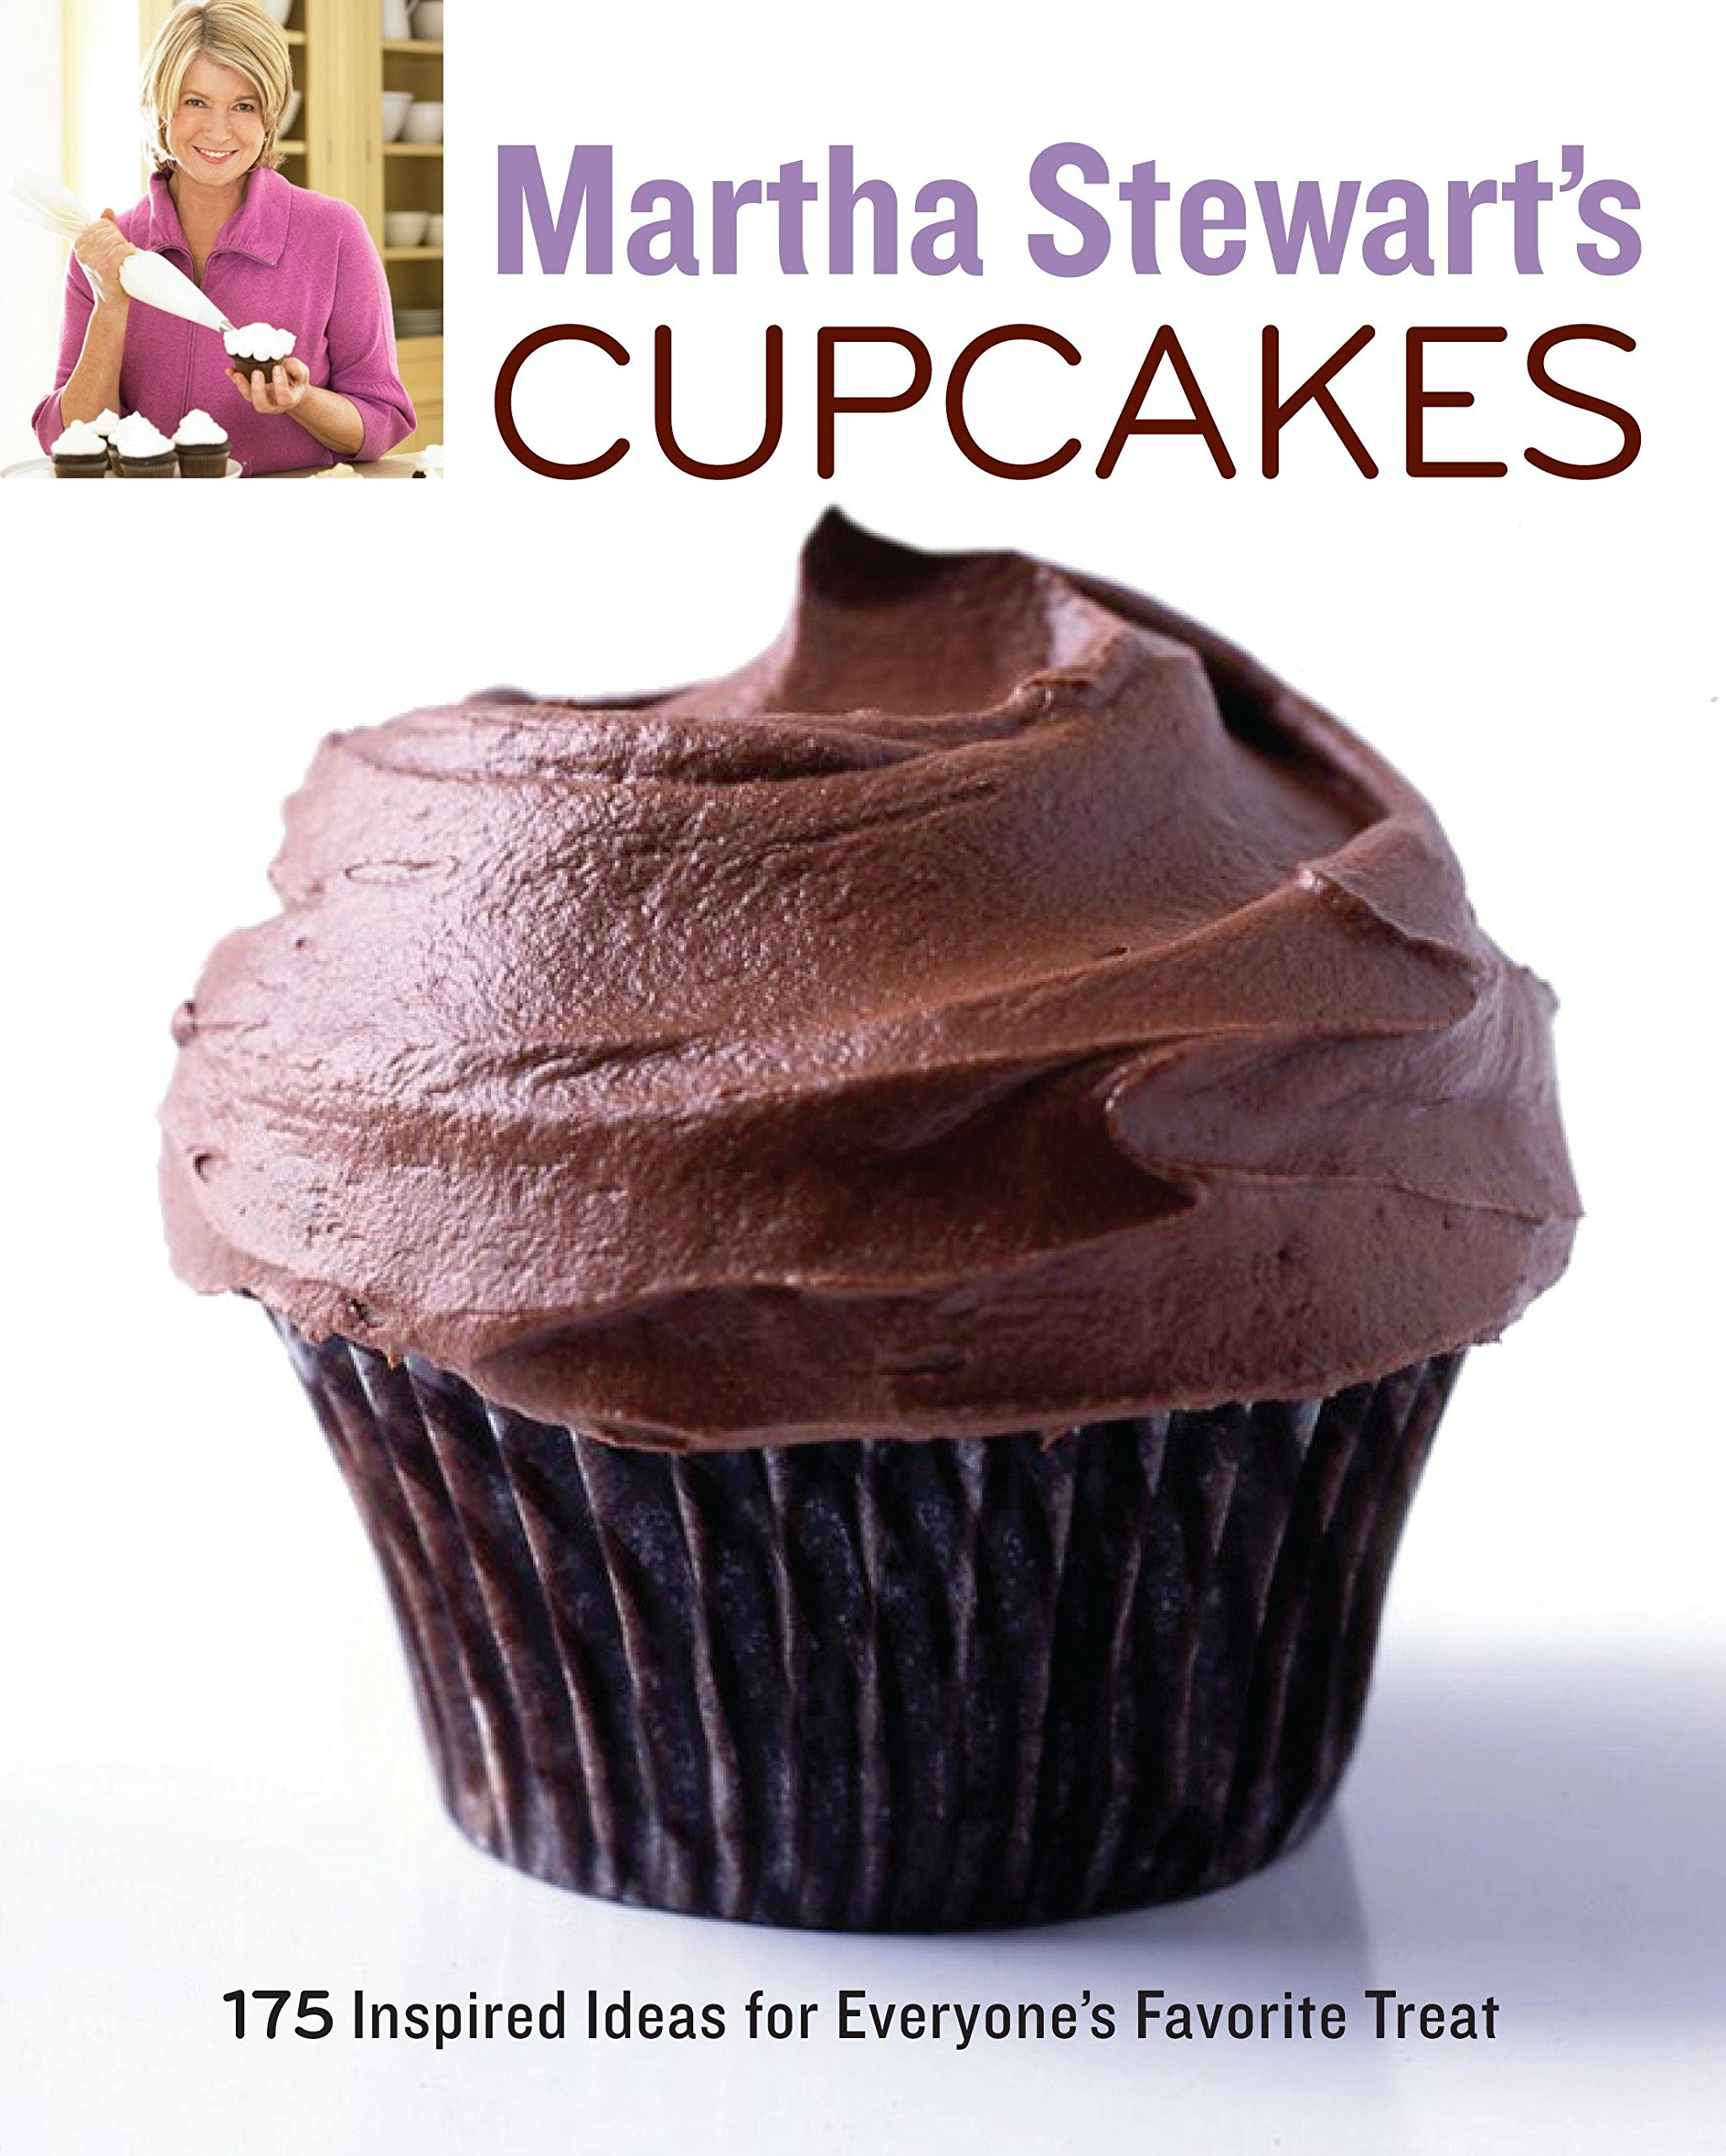 Martha Stewart's Cupcakes: 175 Inspired Ideas for Everyone's Favorite Treat: A Baking Book by Random House